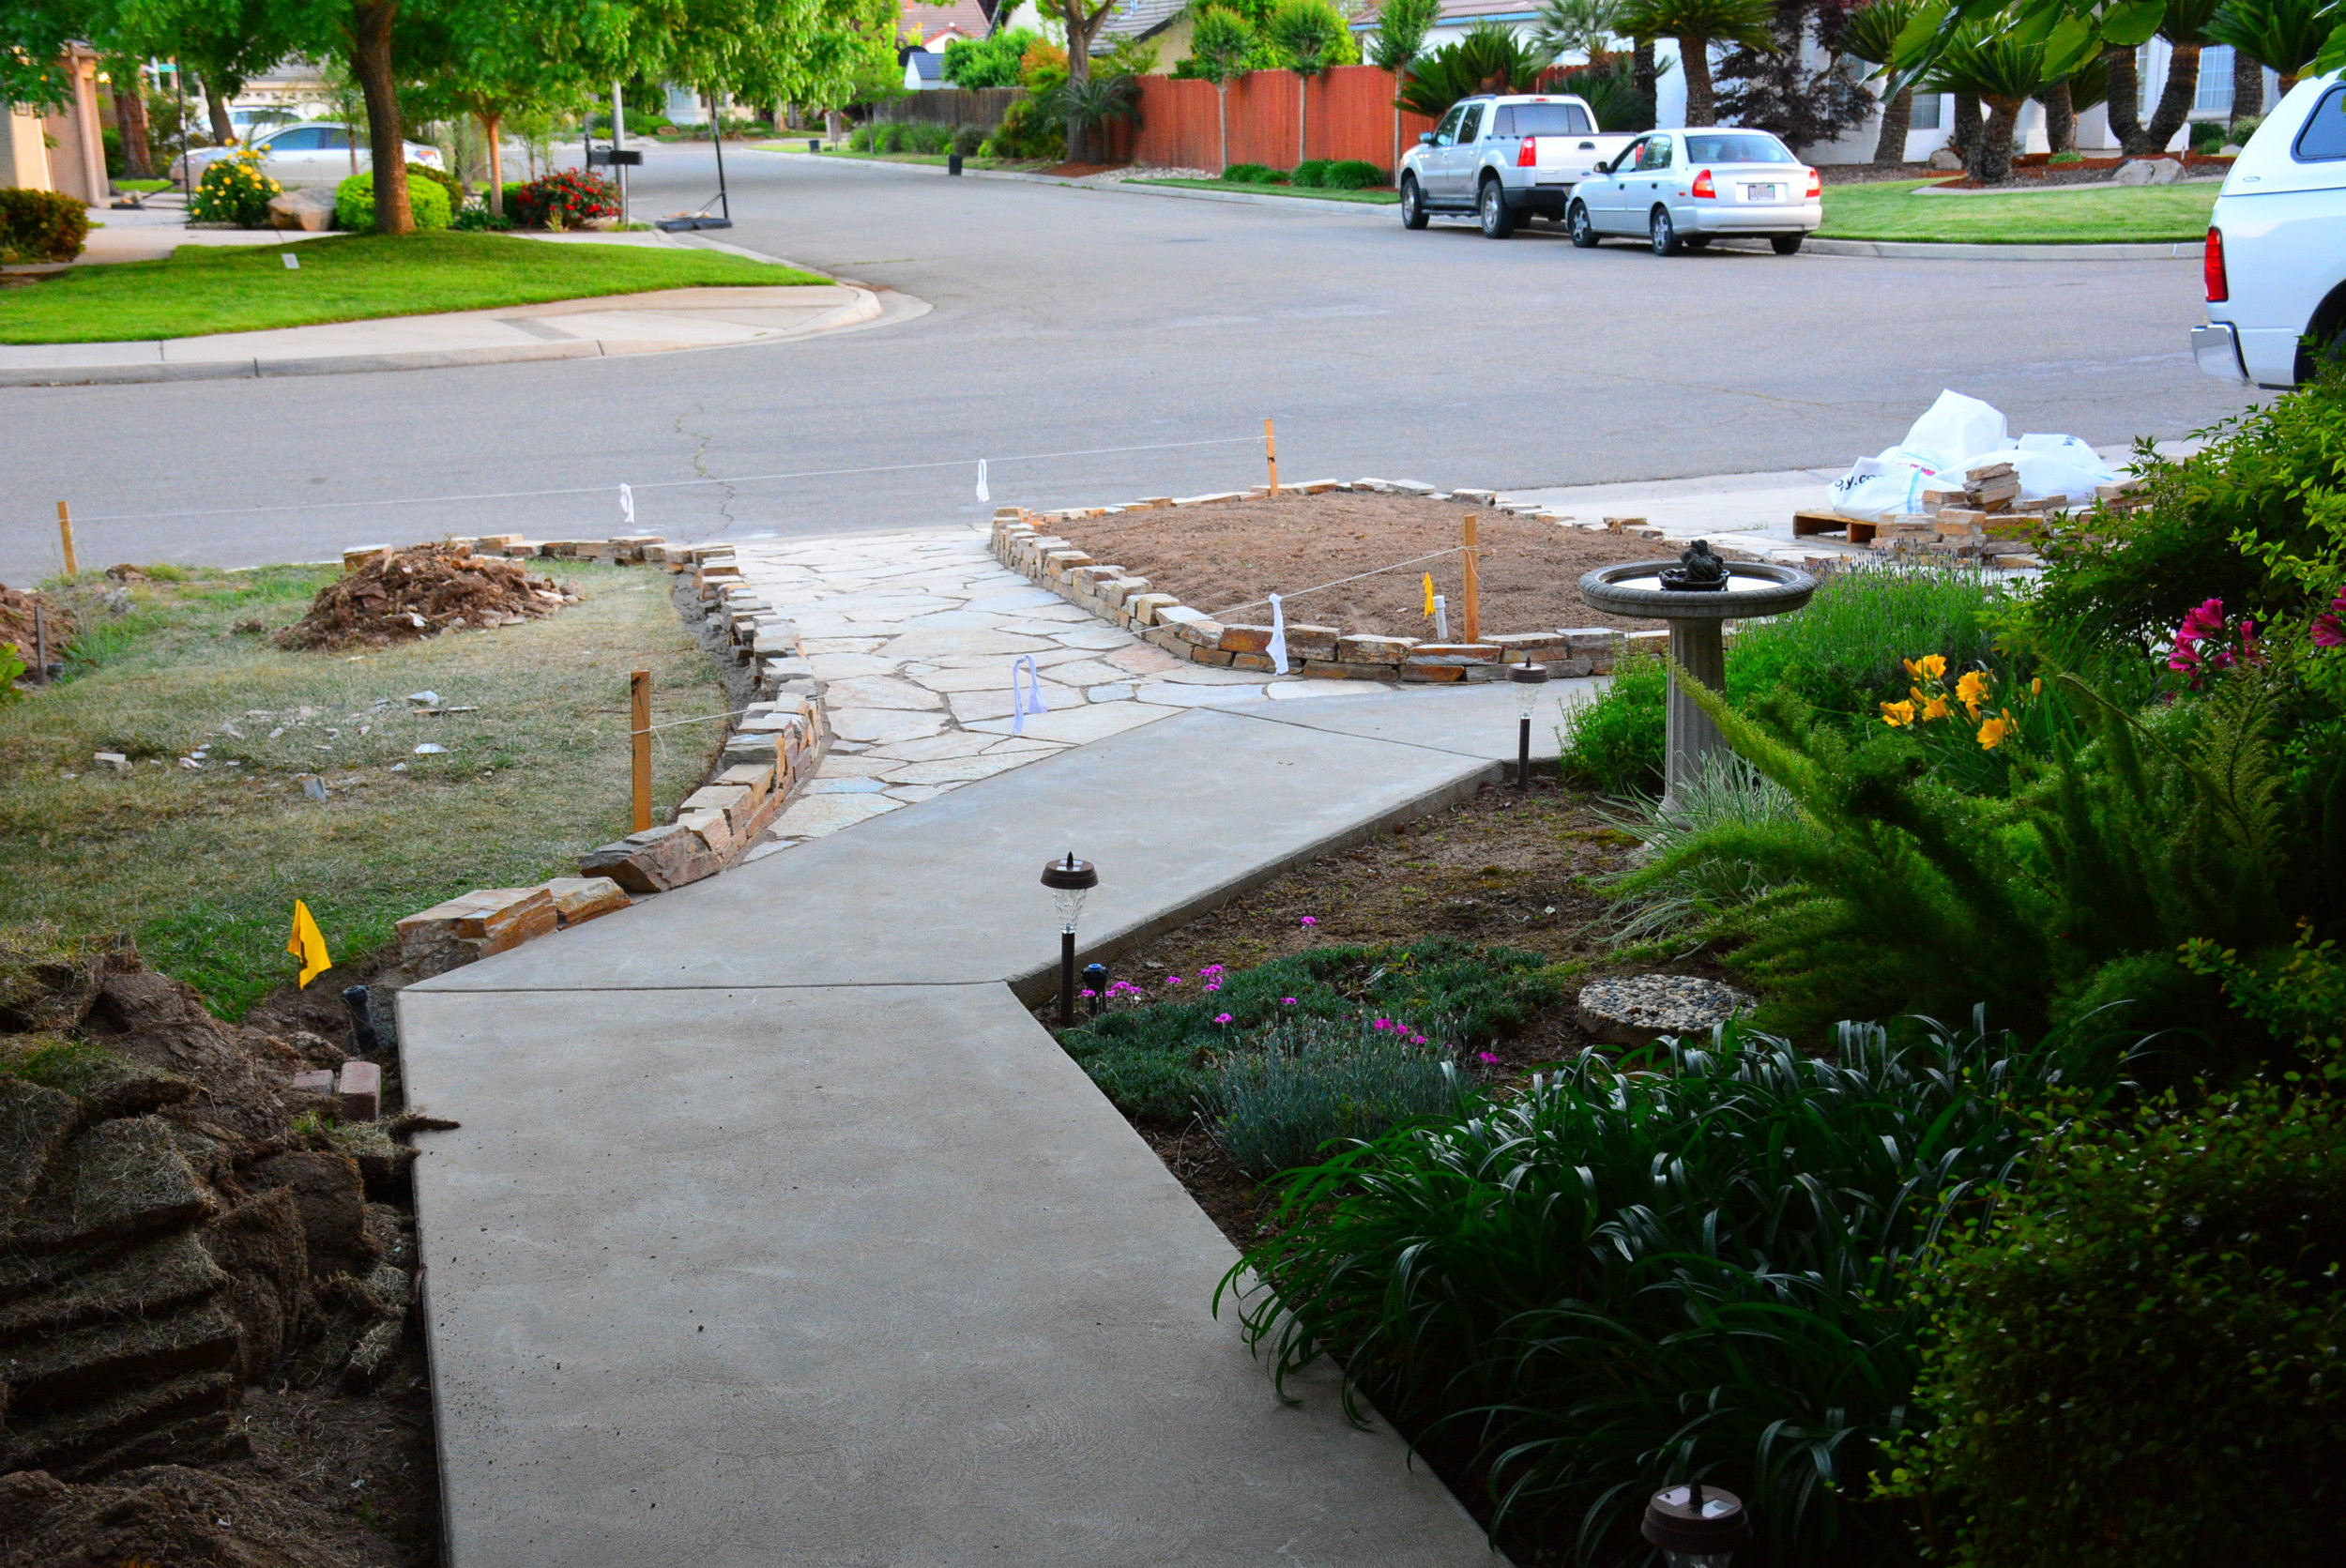 4/29/17- Fast forward- all the curbs bordering flagstone are done